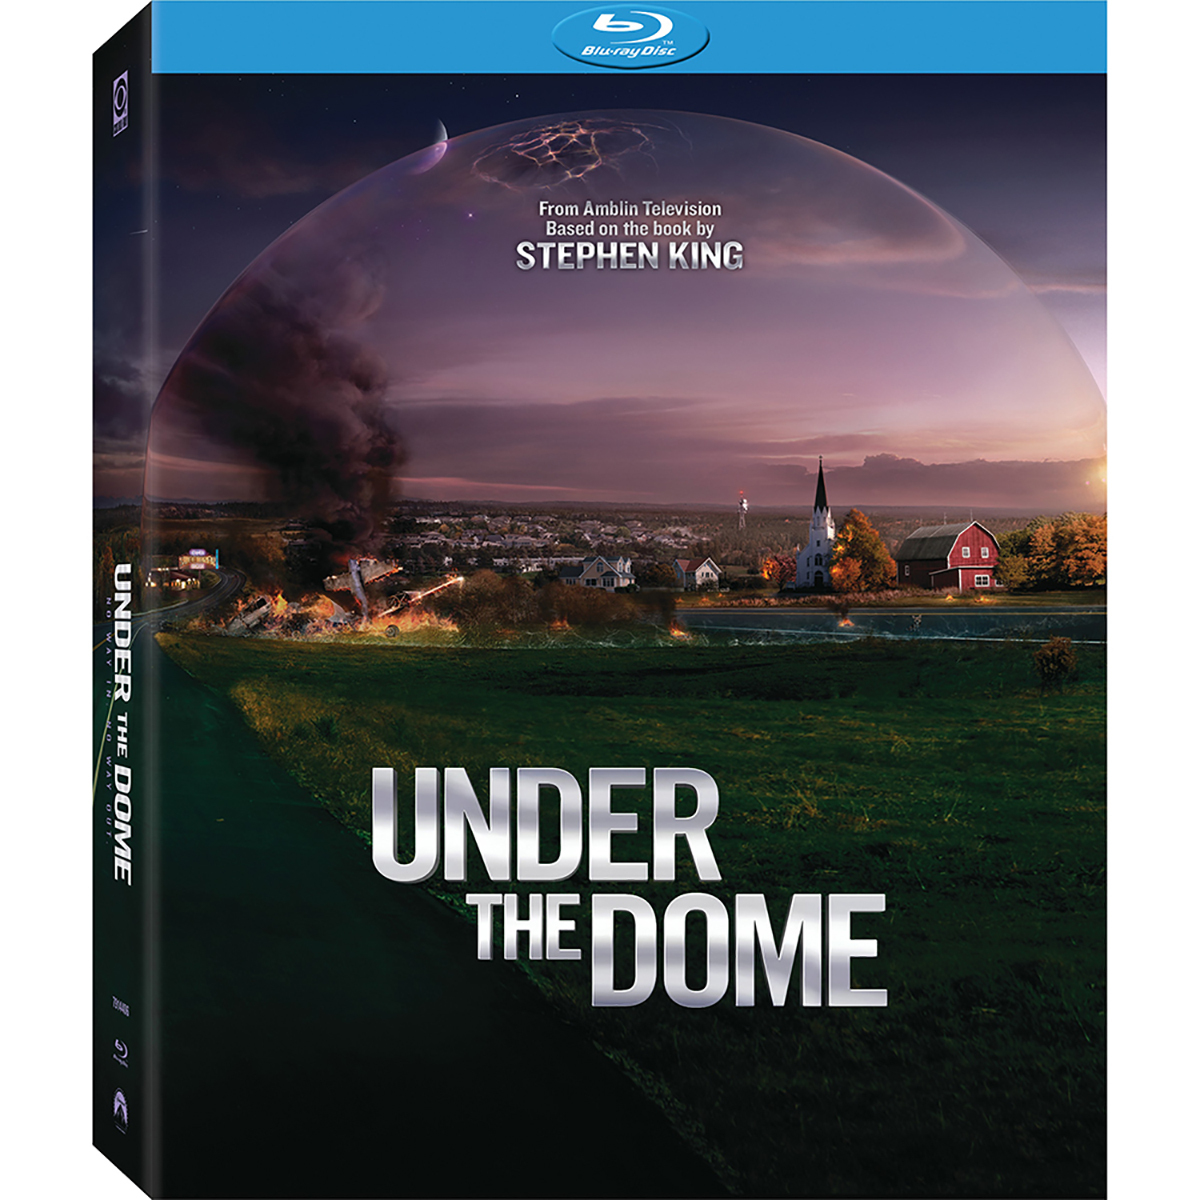 Under The Dome: Season 1 Blu-ray -  DVDs & Videos 2870-463956